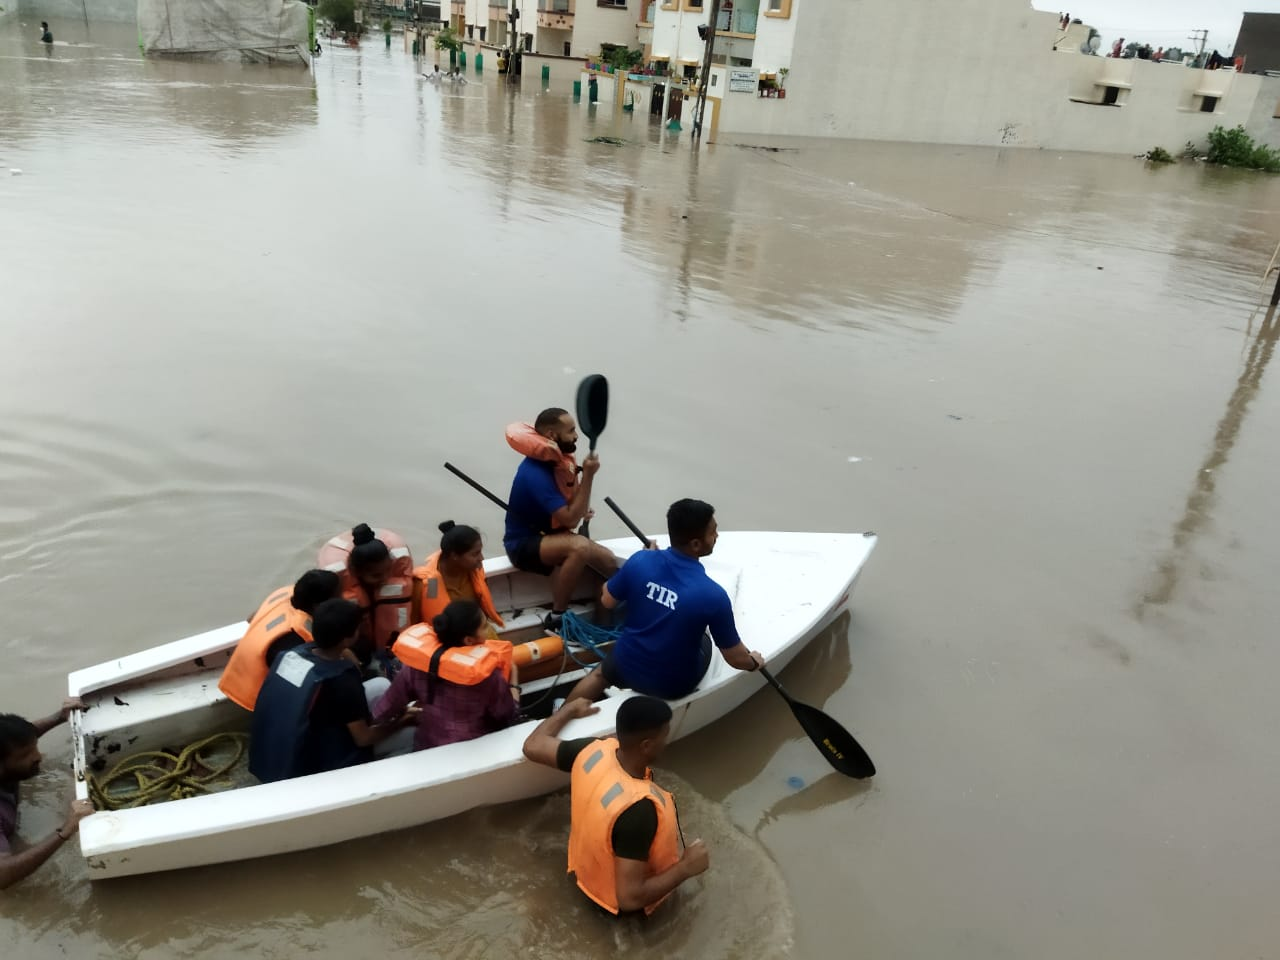 FLOOD RELIEF OPERATIONS AT GUJARAT BY INDIAN NAVY